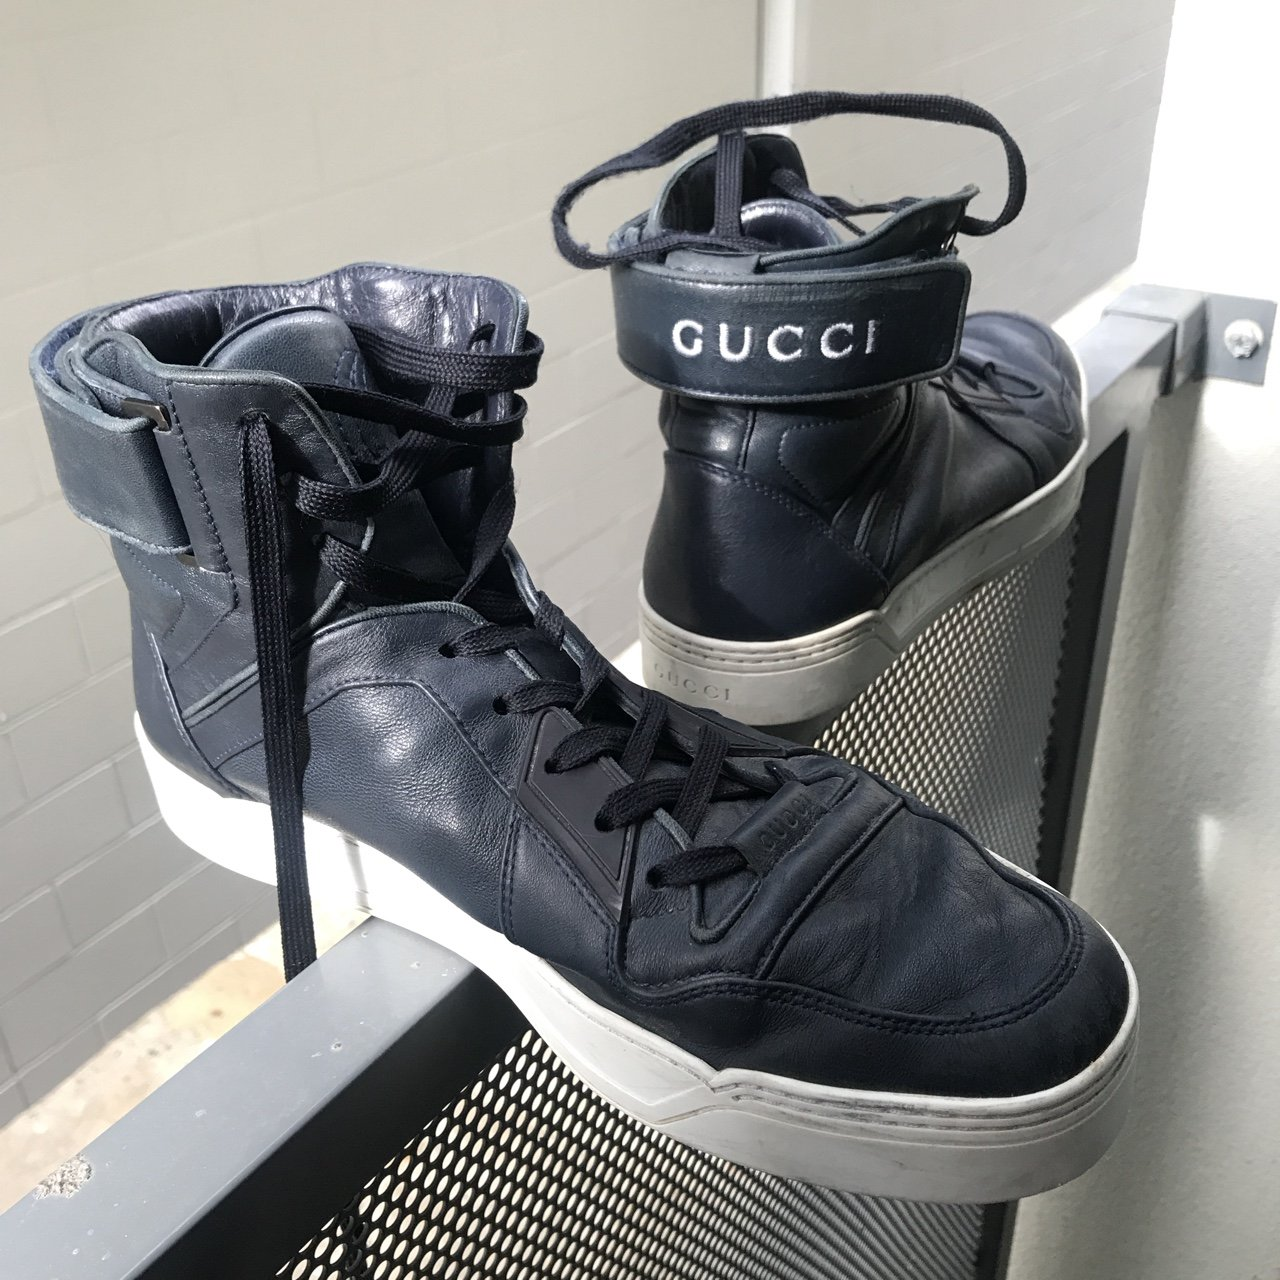 64dbad384c4 Gucci Guccissima hi-top leather basketball sneakers